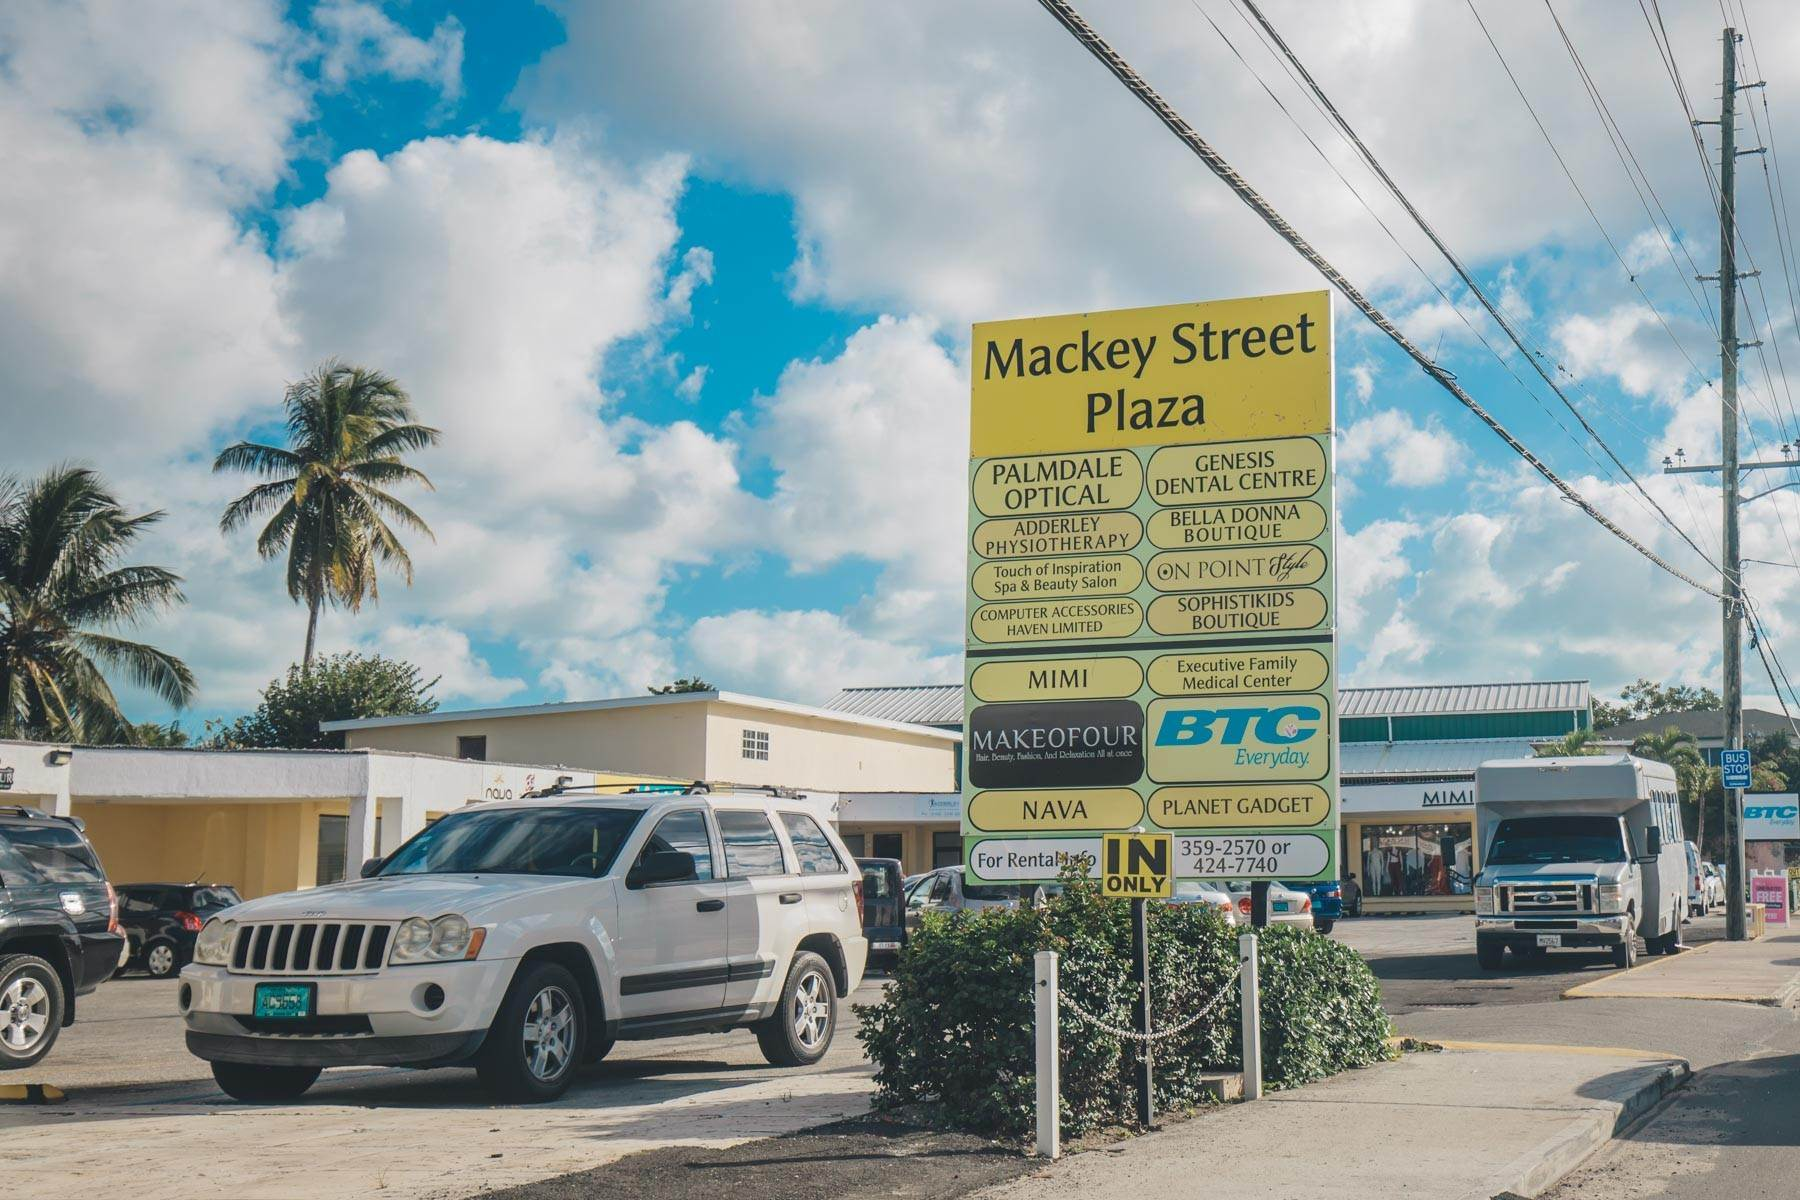 Commercial for Rent at Prime Commercial Property for Rent on Mackey Street - MLS 42984 Palmdale, Nassau And Paradise Island, Bahamas